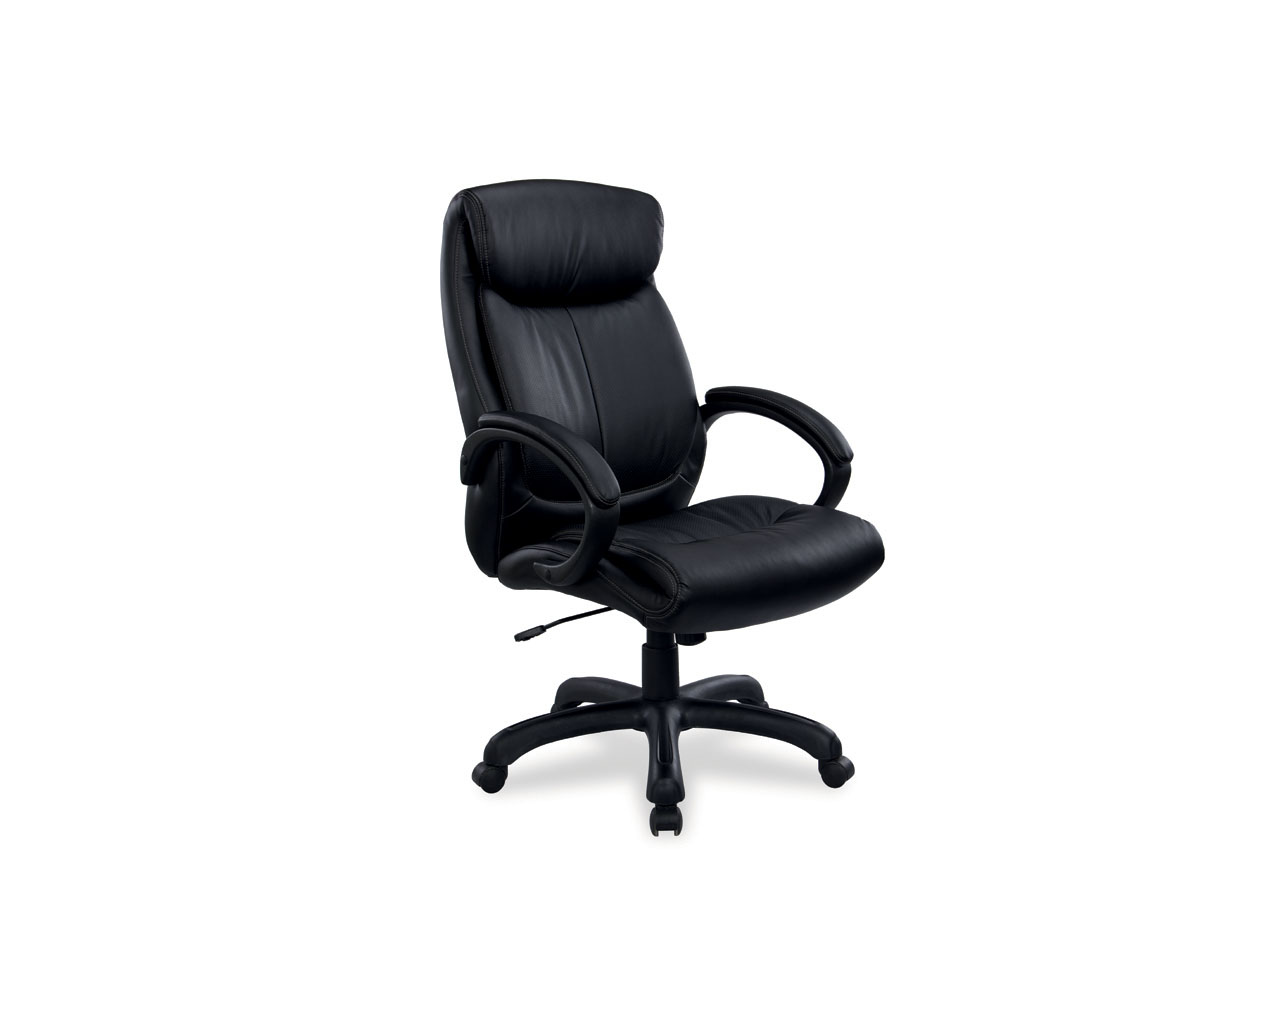 Sierra High Back Chair